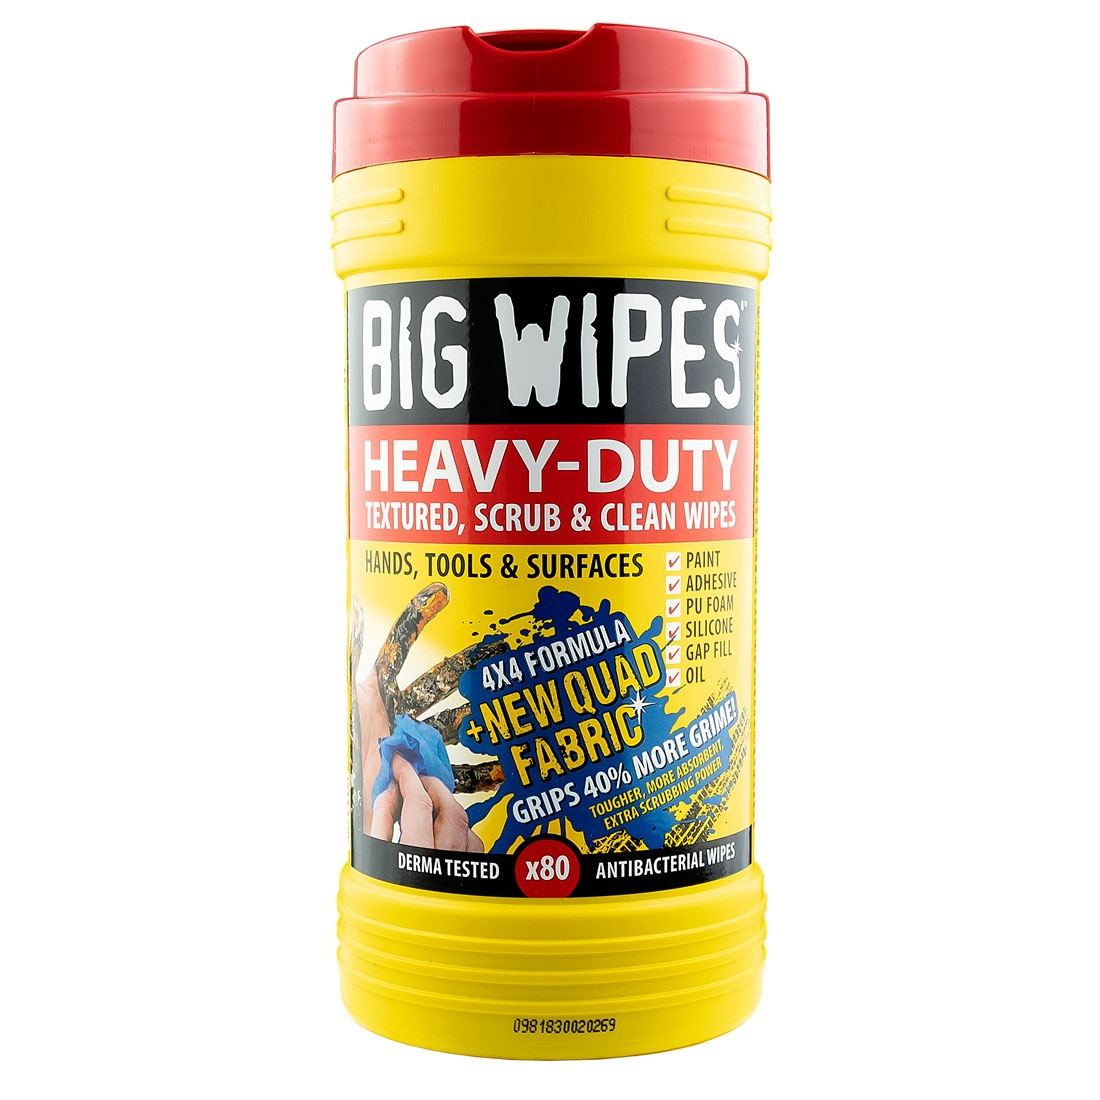 BIG WIPES Heavy Duty 4x4 Cleaning Wipes - Red Top